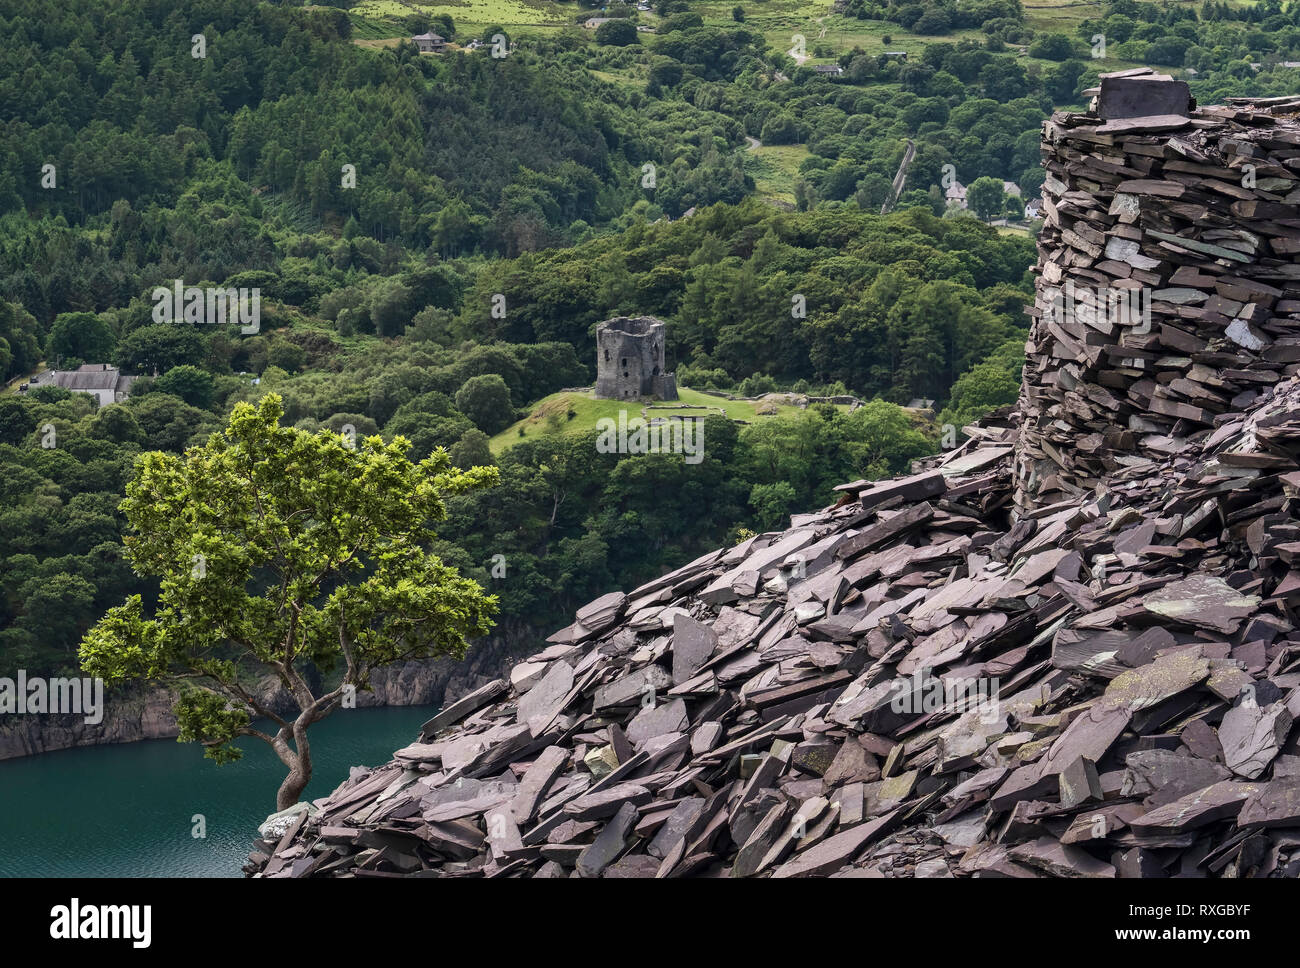 Dolbadarn Castle and Llyn Peris from Dinorwic Slate Quarry, Snowdonia National Park, North Wales, UK - Stock Image